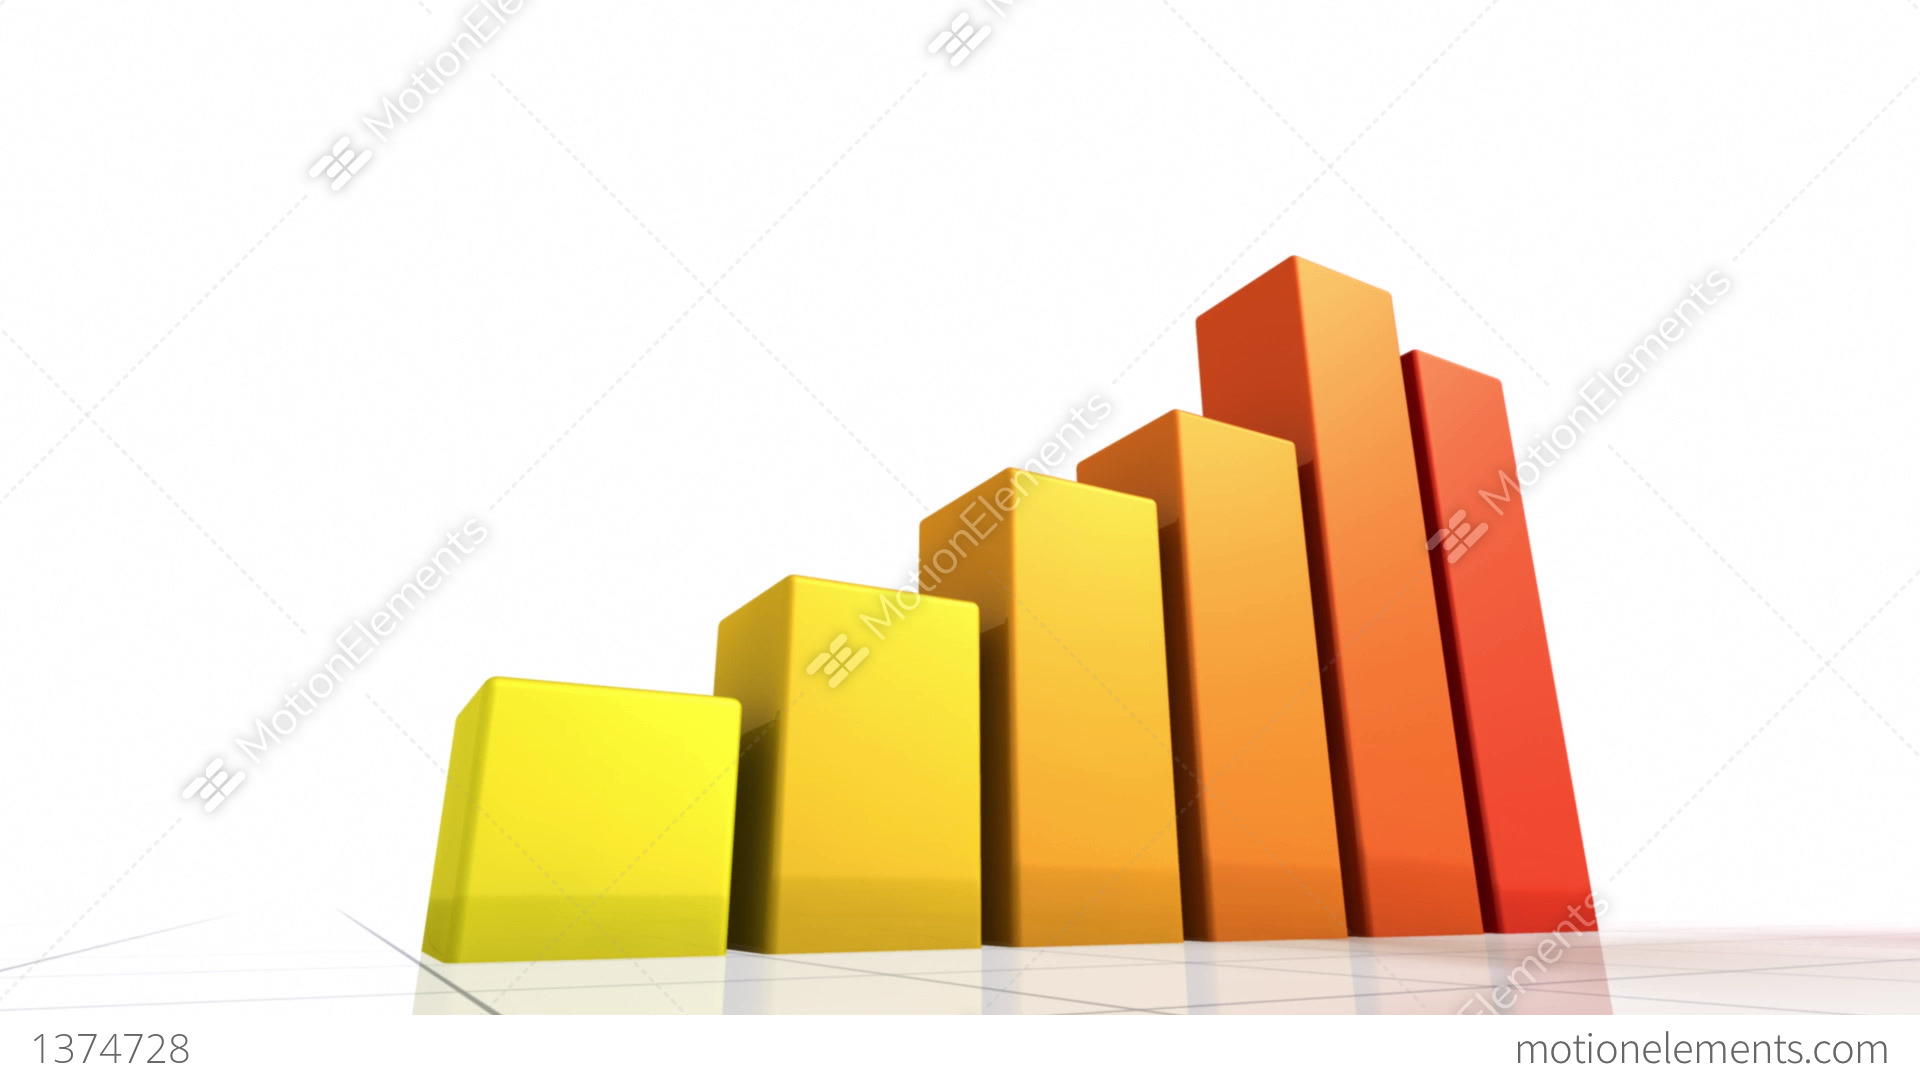 Animated bar graph stock animation 1374728 animated bar graph stock video footage ccuart Images